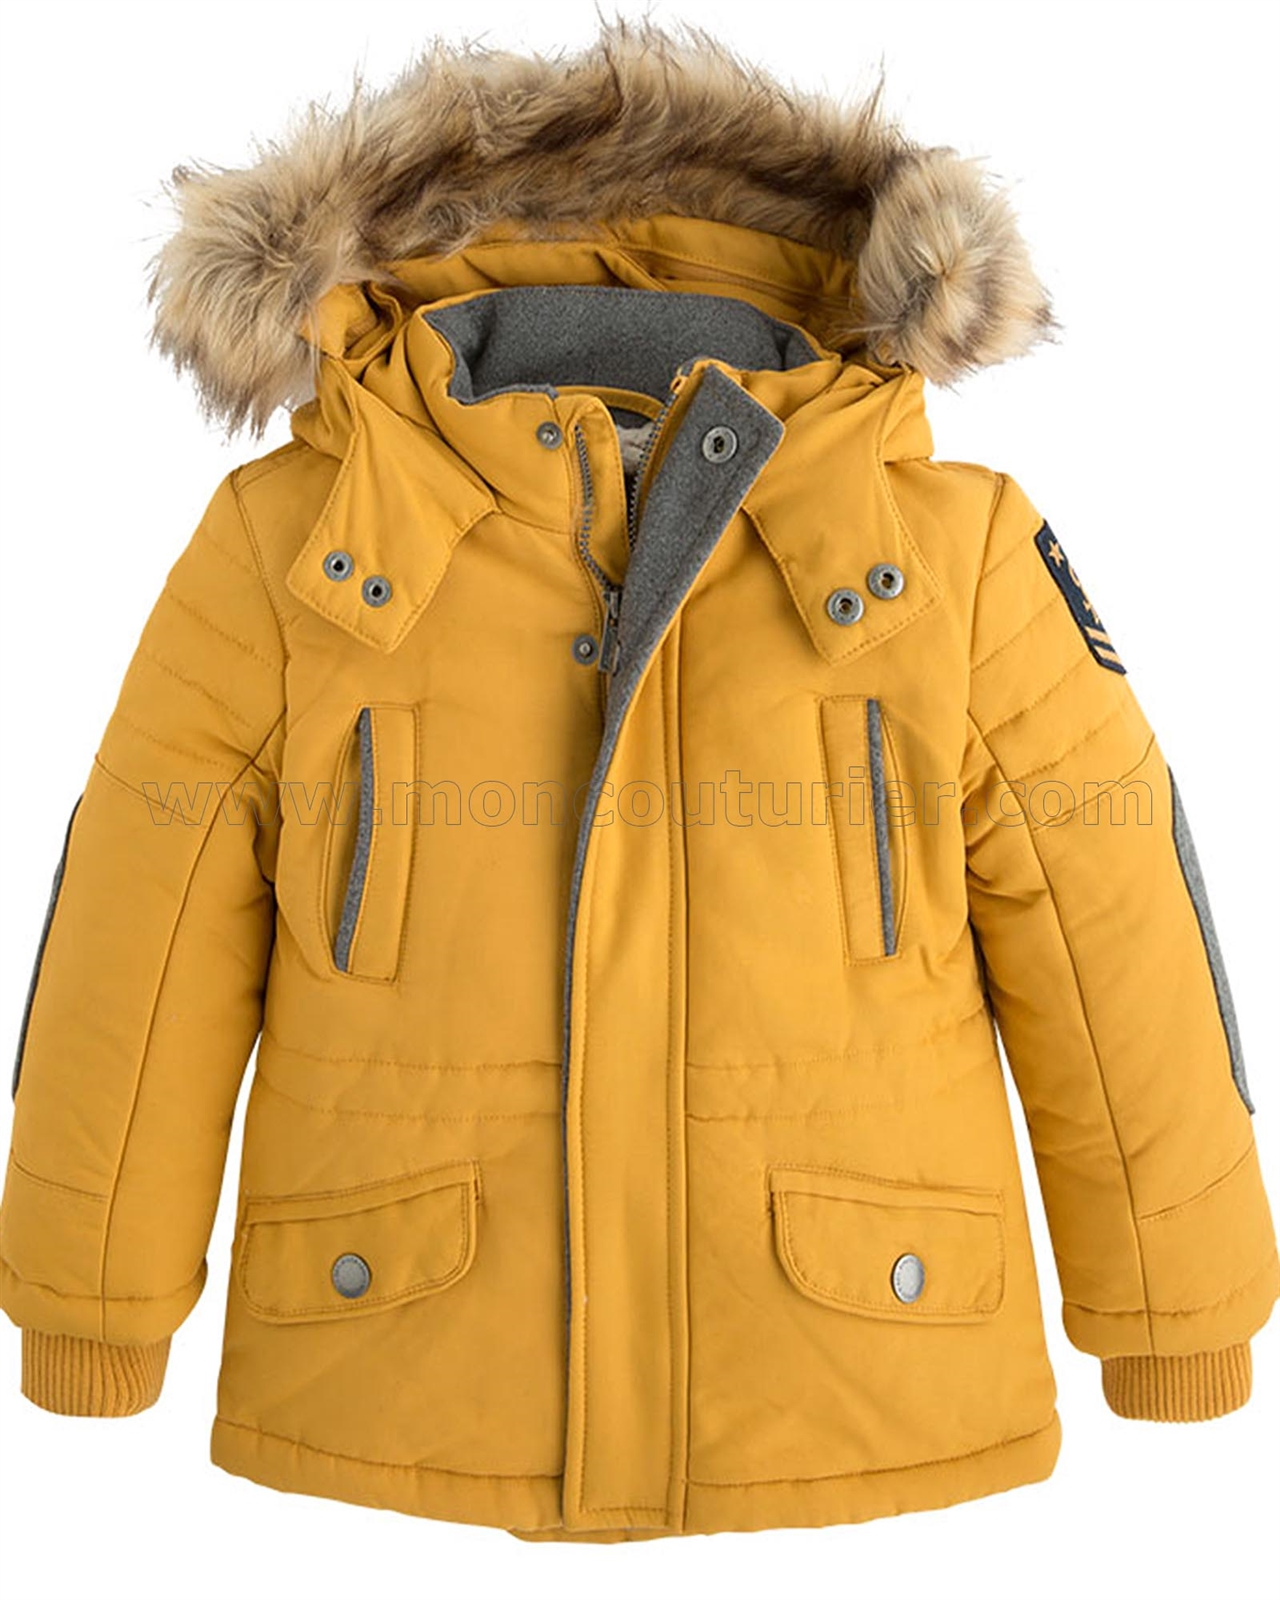 Mayoral Boy's Parka Coat - Mayoral